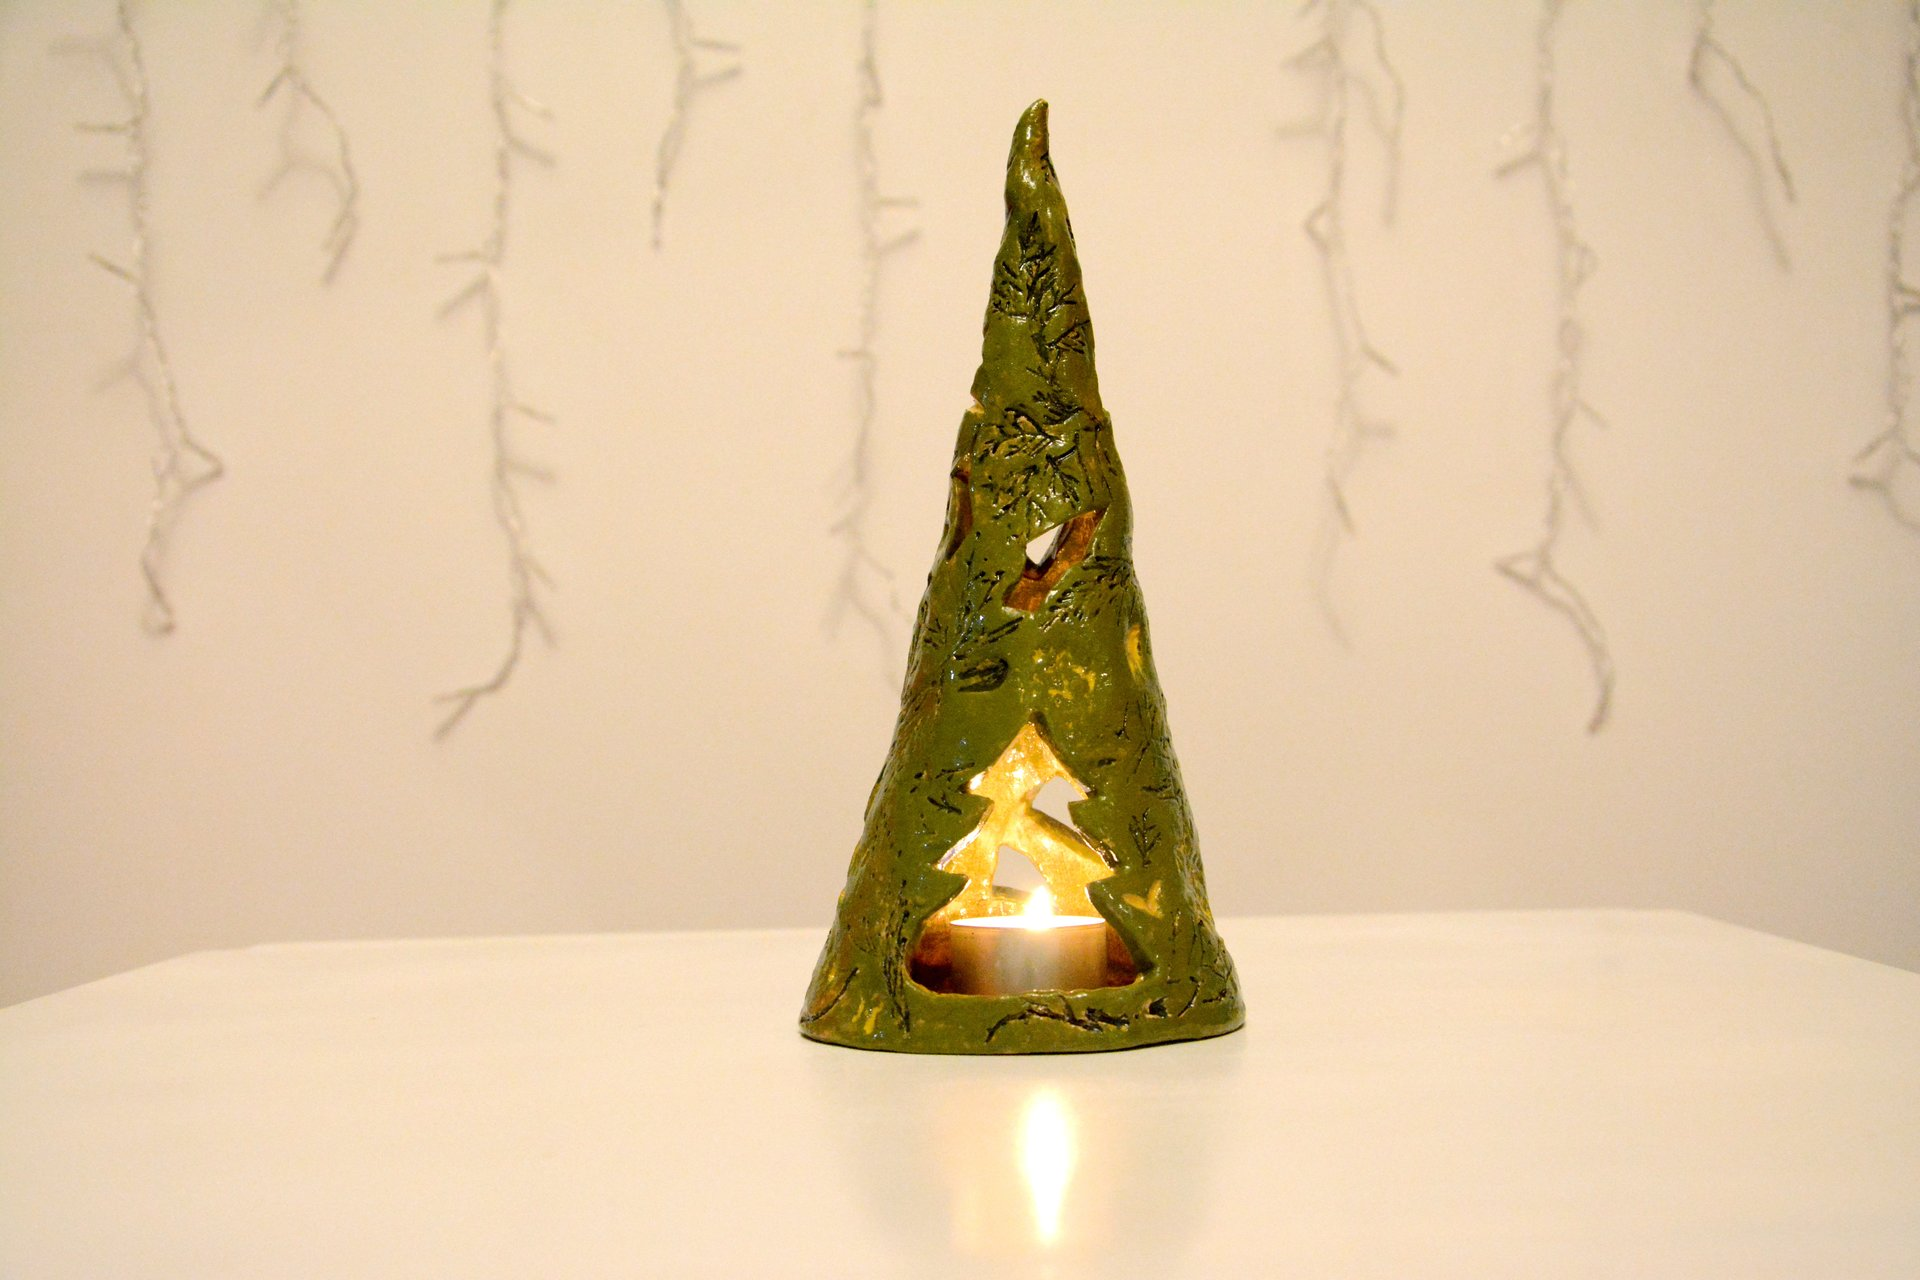 Eco style Christmas tree - Ceramic Candl-holders, height - 24 cm, diameter - 7 cm, photo 1 of 2.